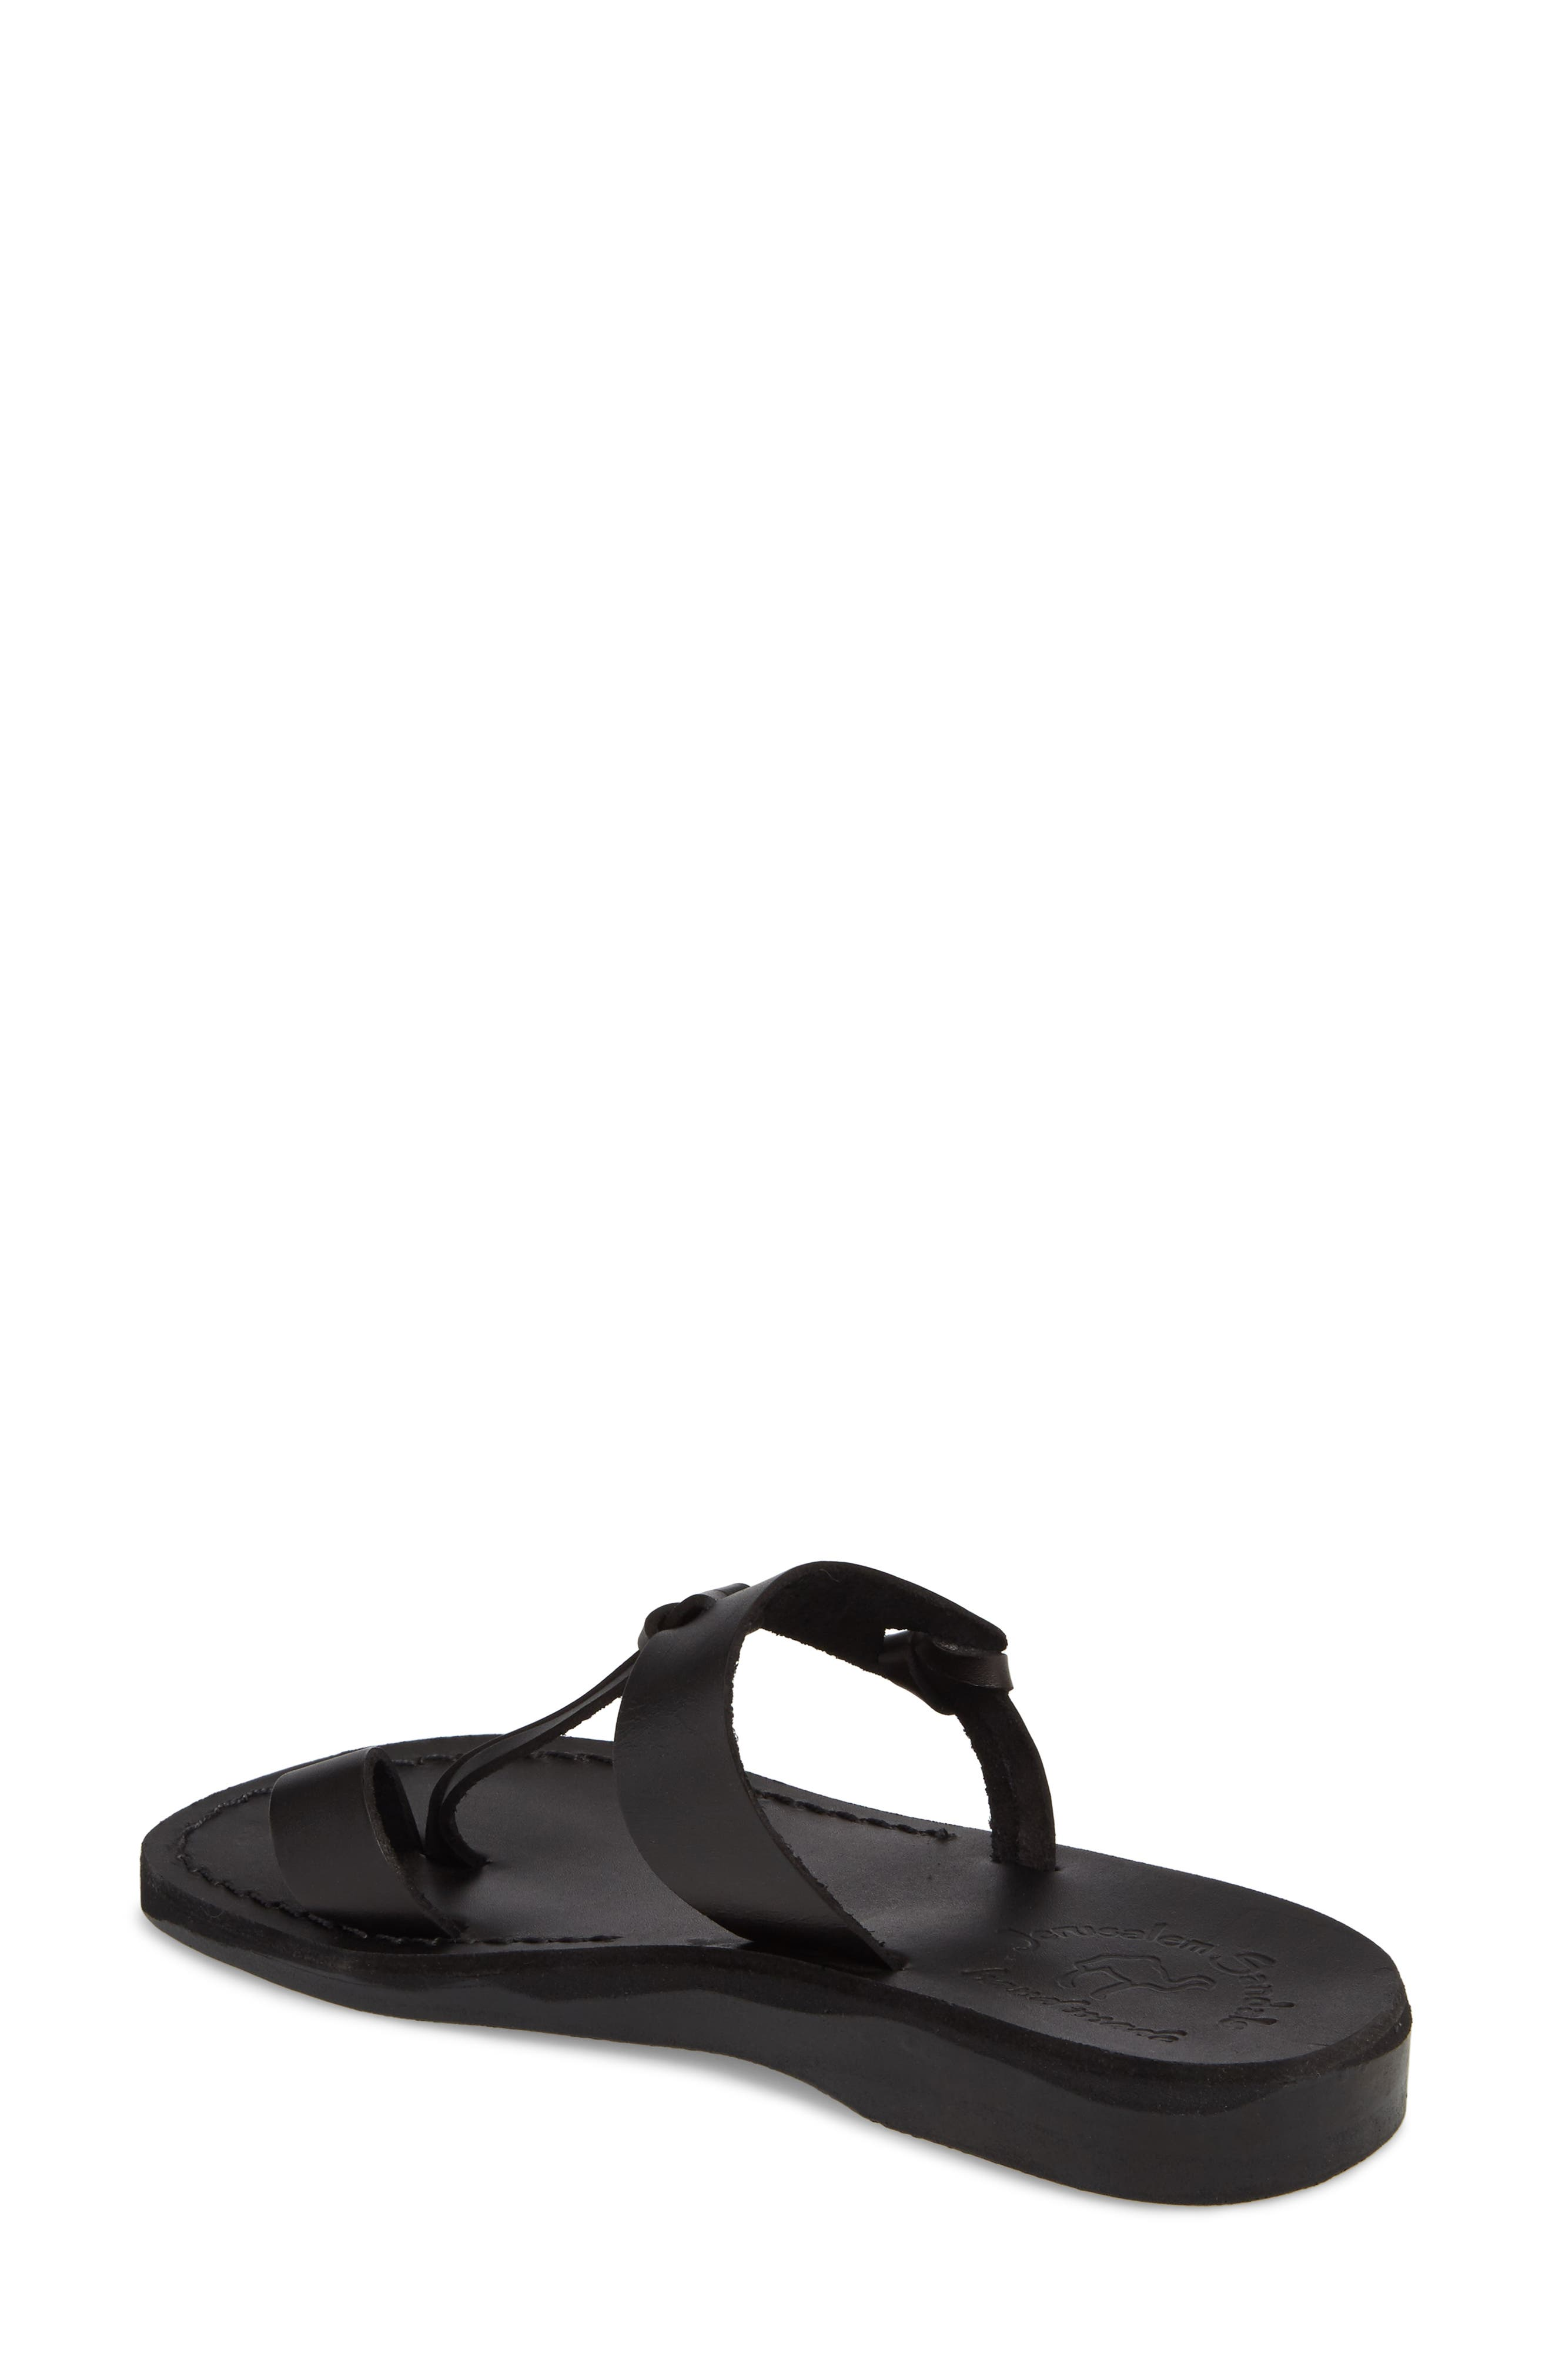 JERUSALEM SANDALS,                             David Toe-Loop Sandal,                             Alternate thumbnail 2, color,                             BLACK LEATHER